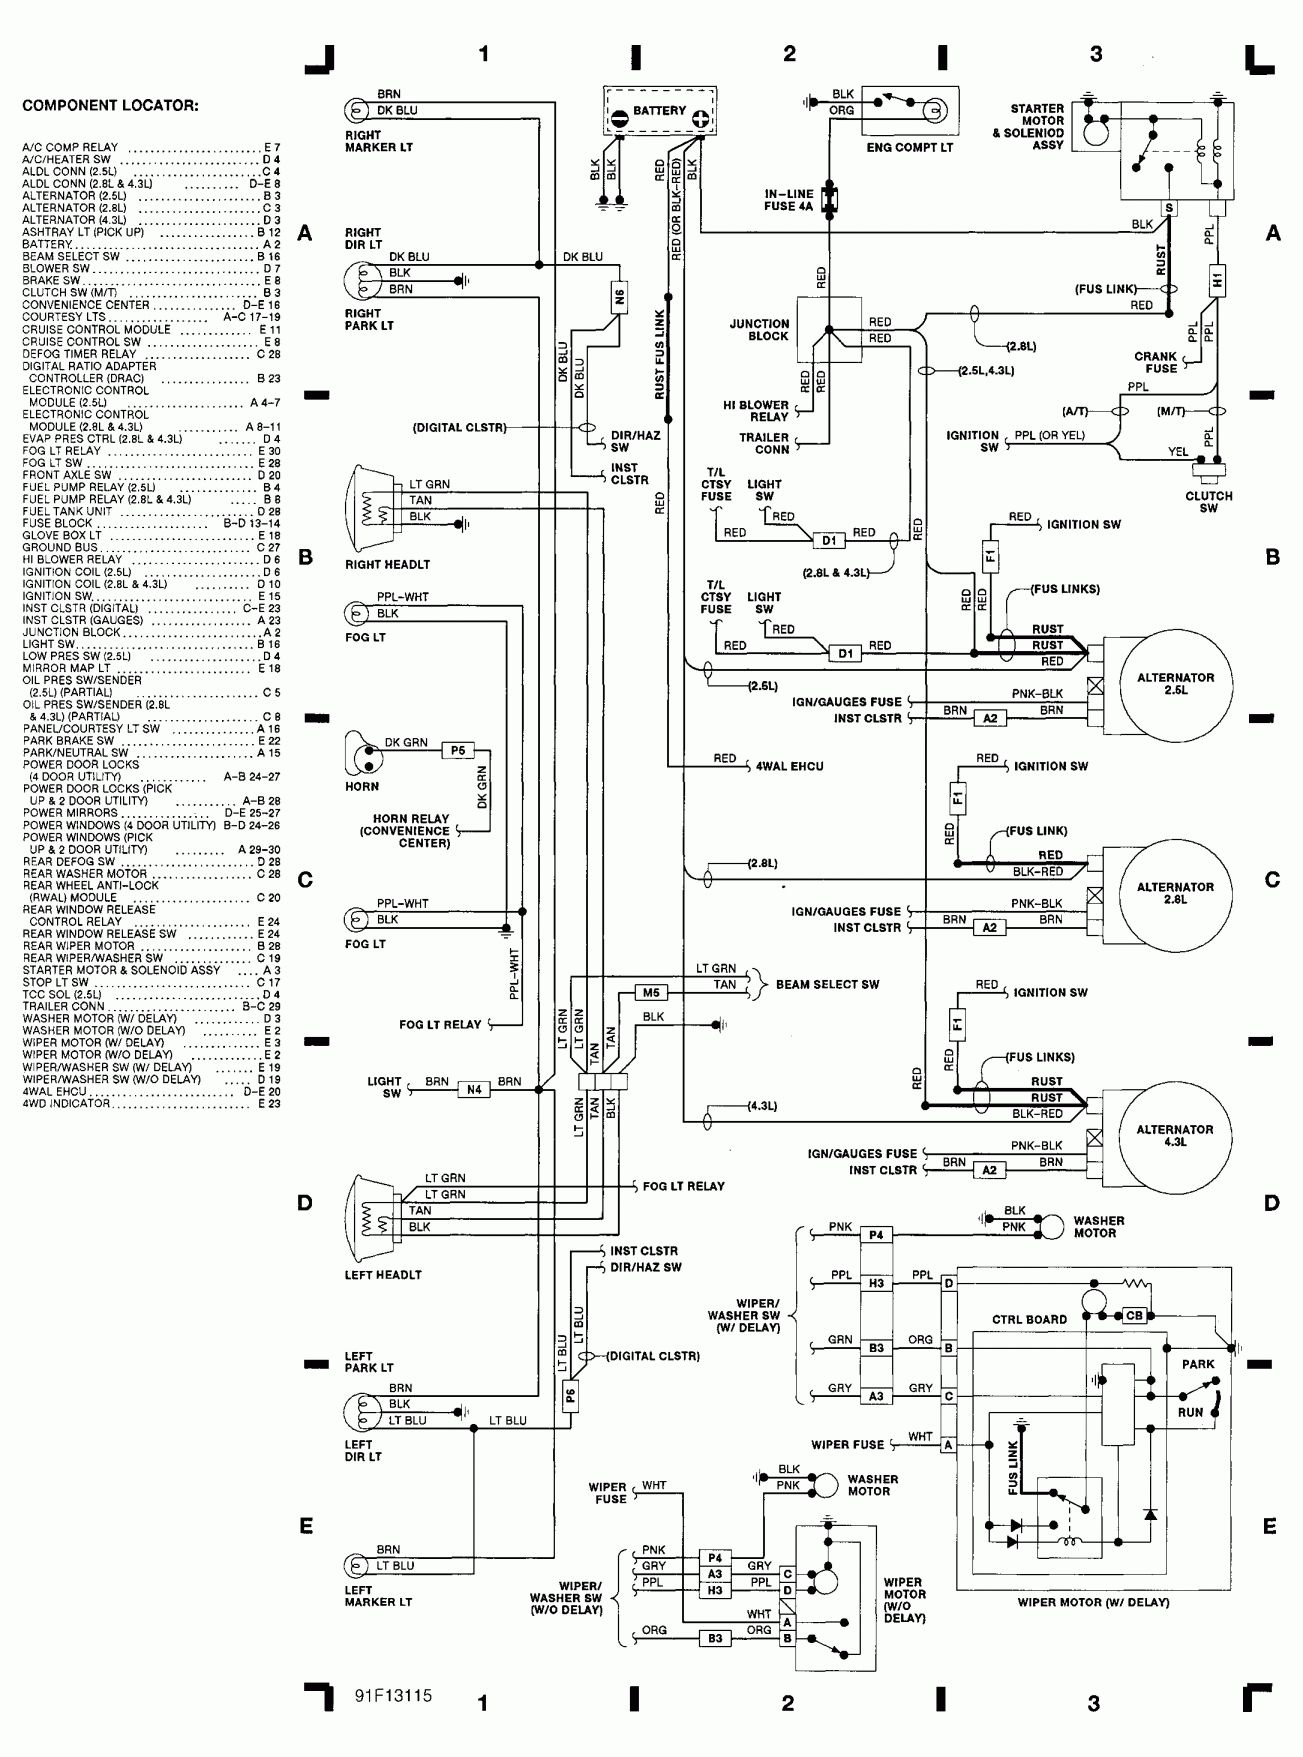 1998 Chevrolet Truck Wiring Diagram and Engine Compartment